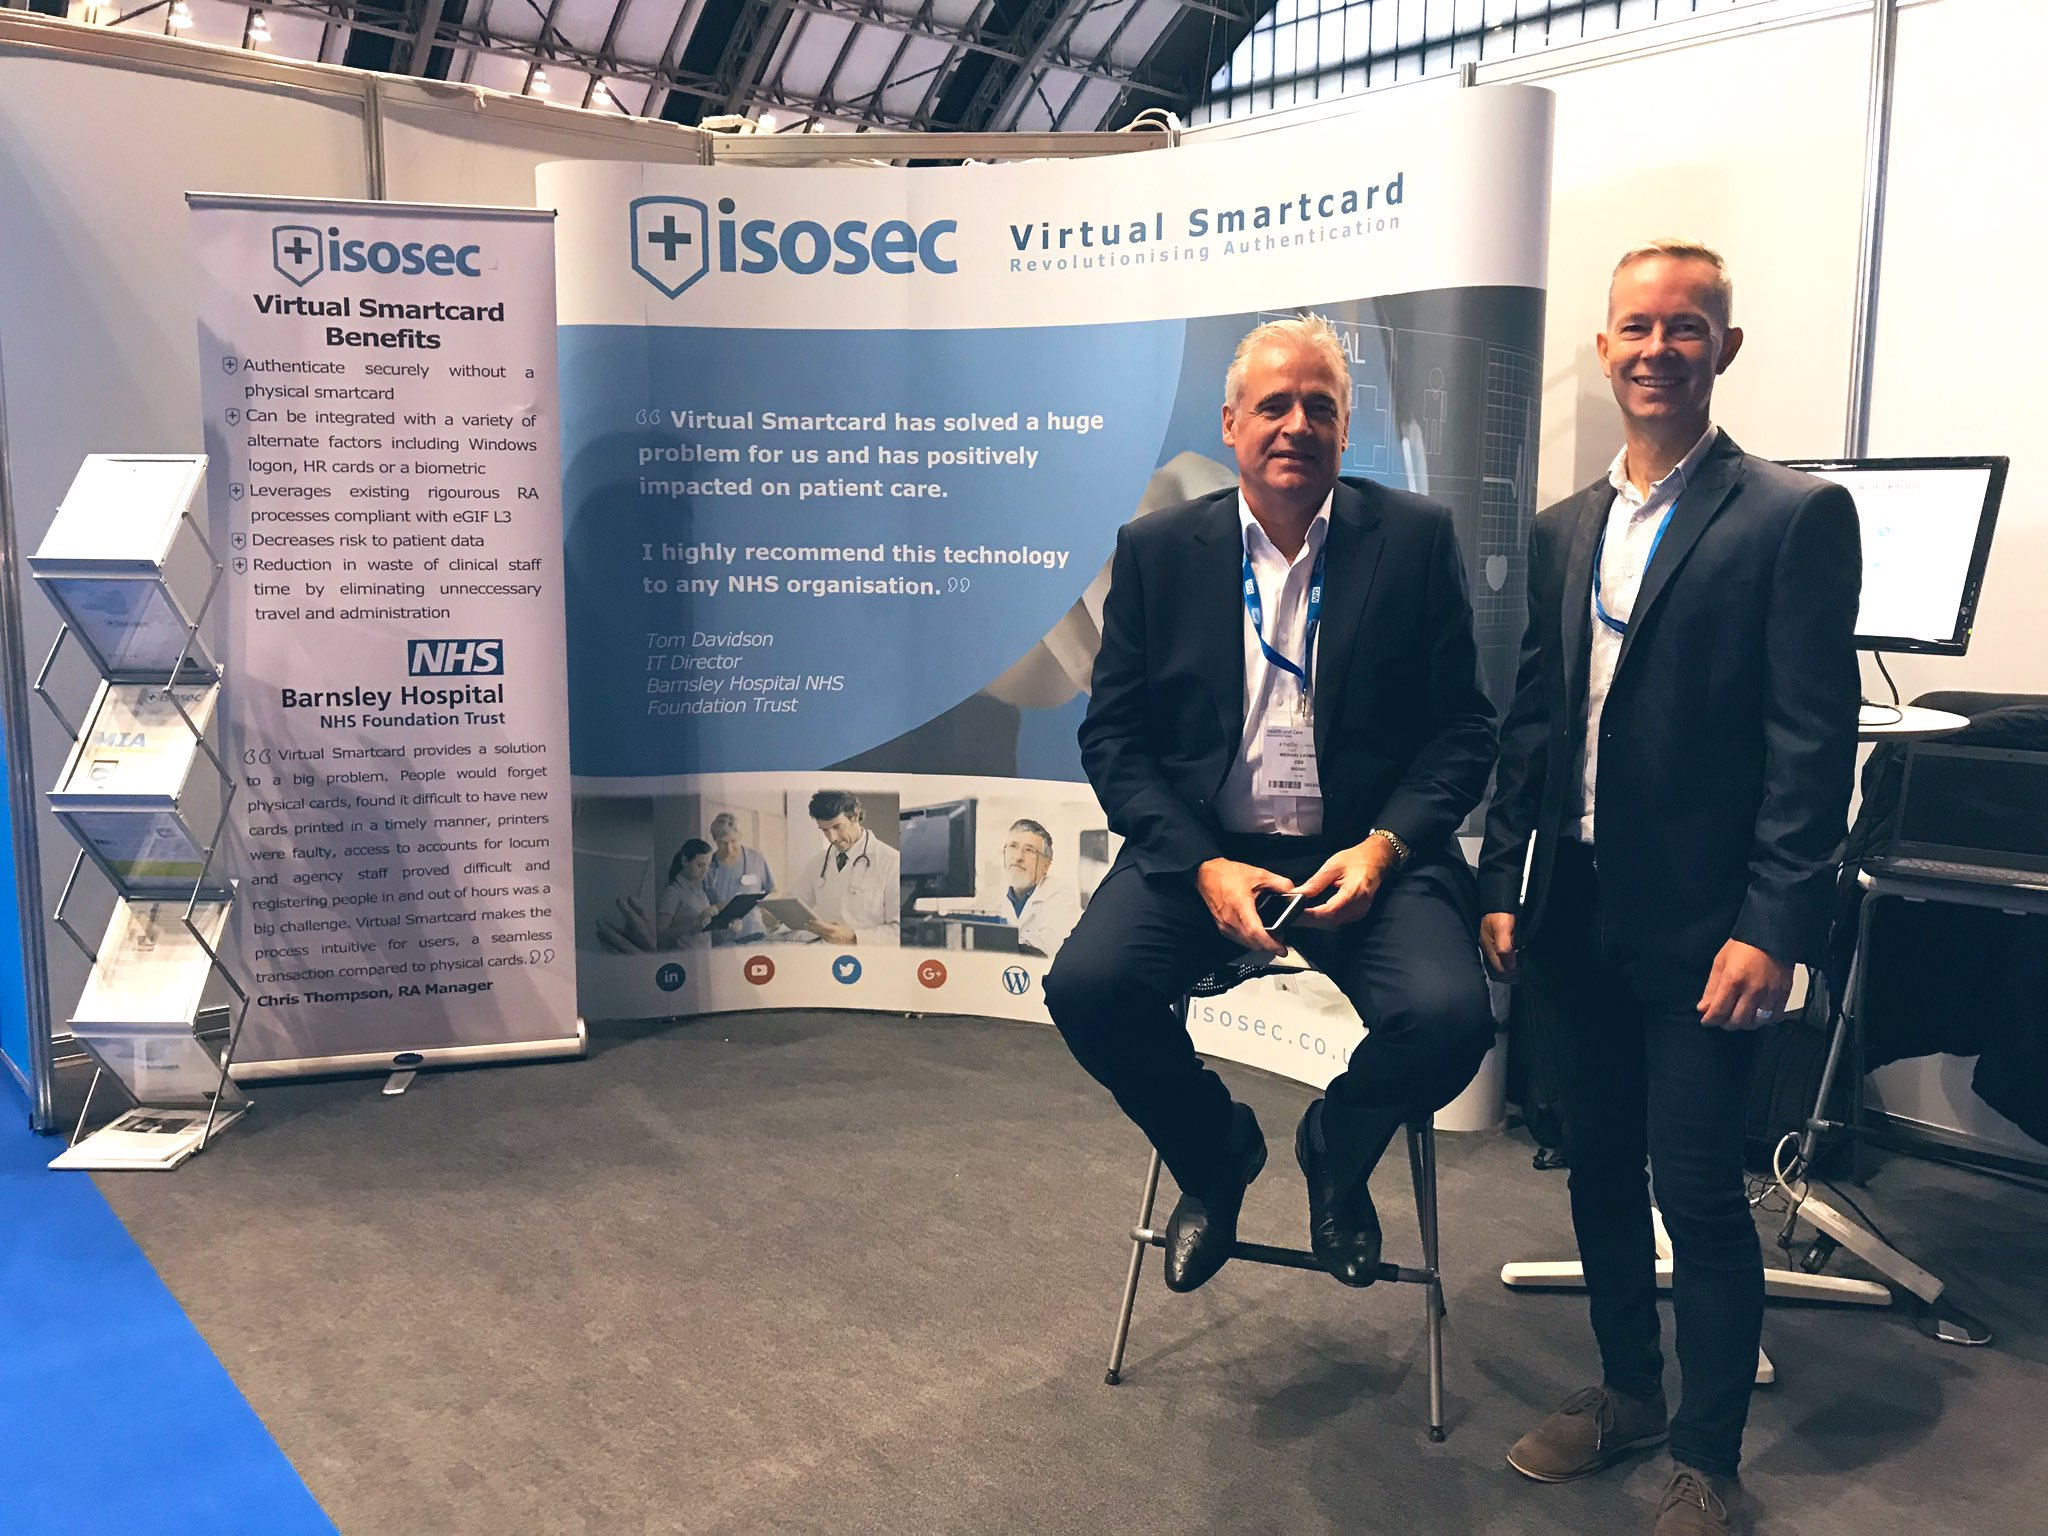 CEO and CTO of Isosec present the new Web Service